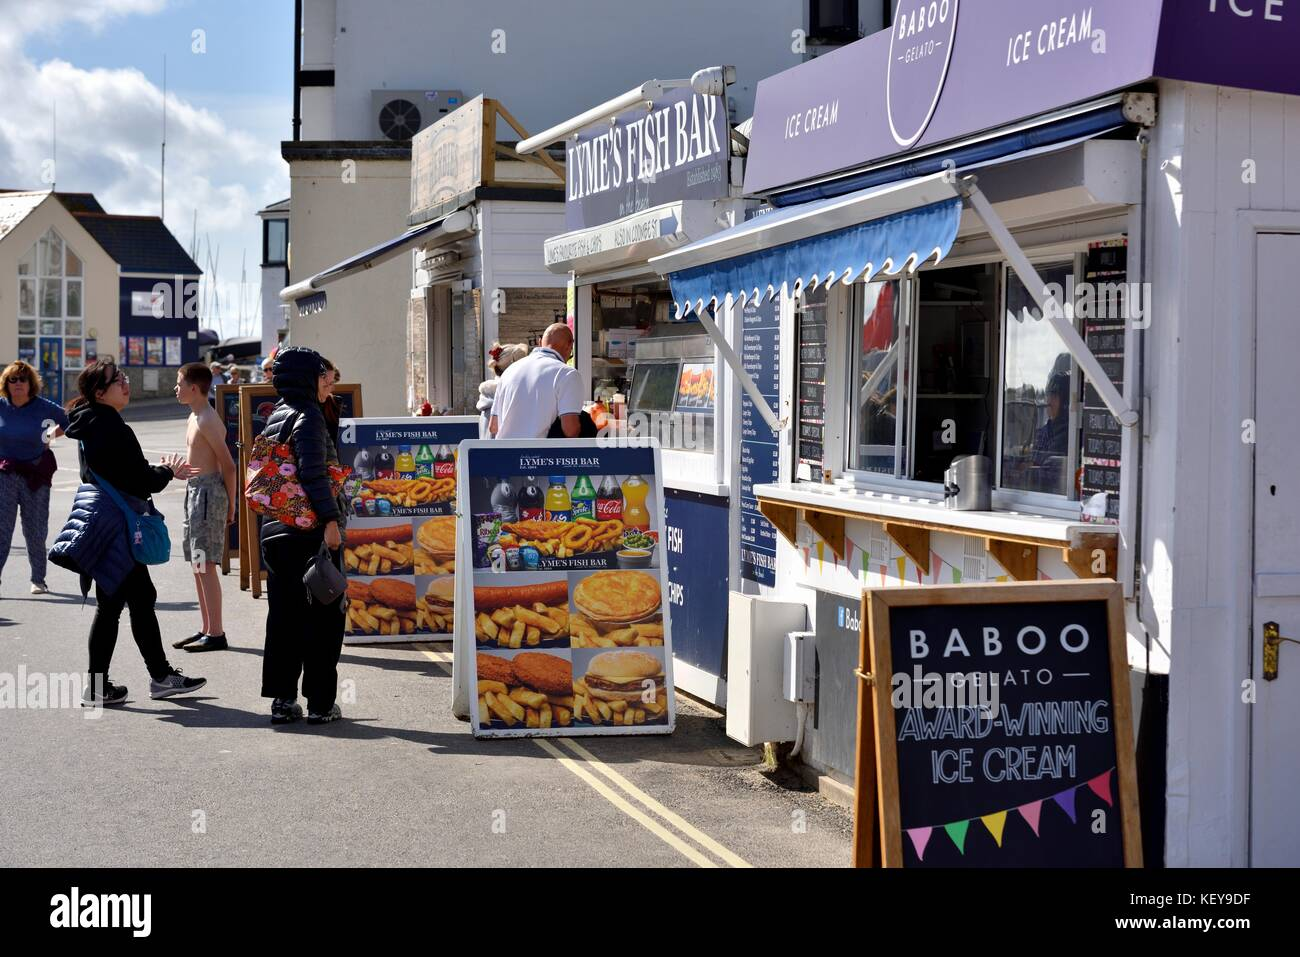 Fish and chips and ice cream being sold on Lyme Regis sea front Dorset England UK - Stock Image